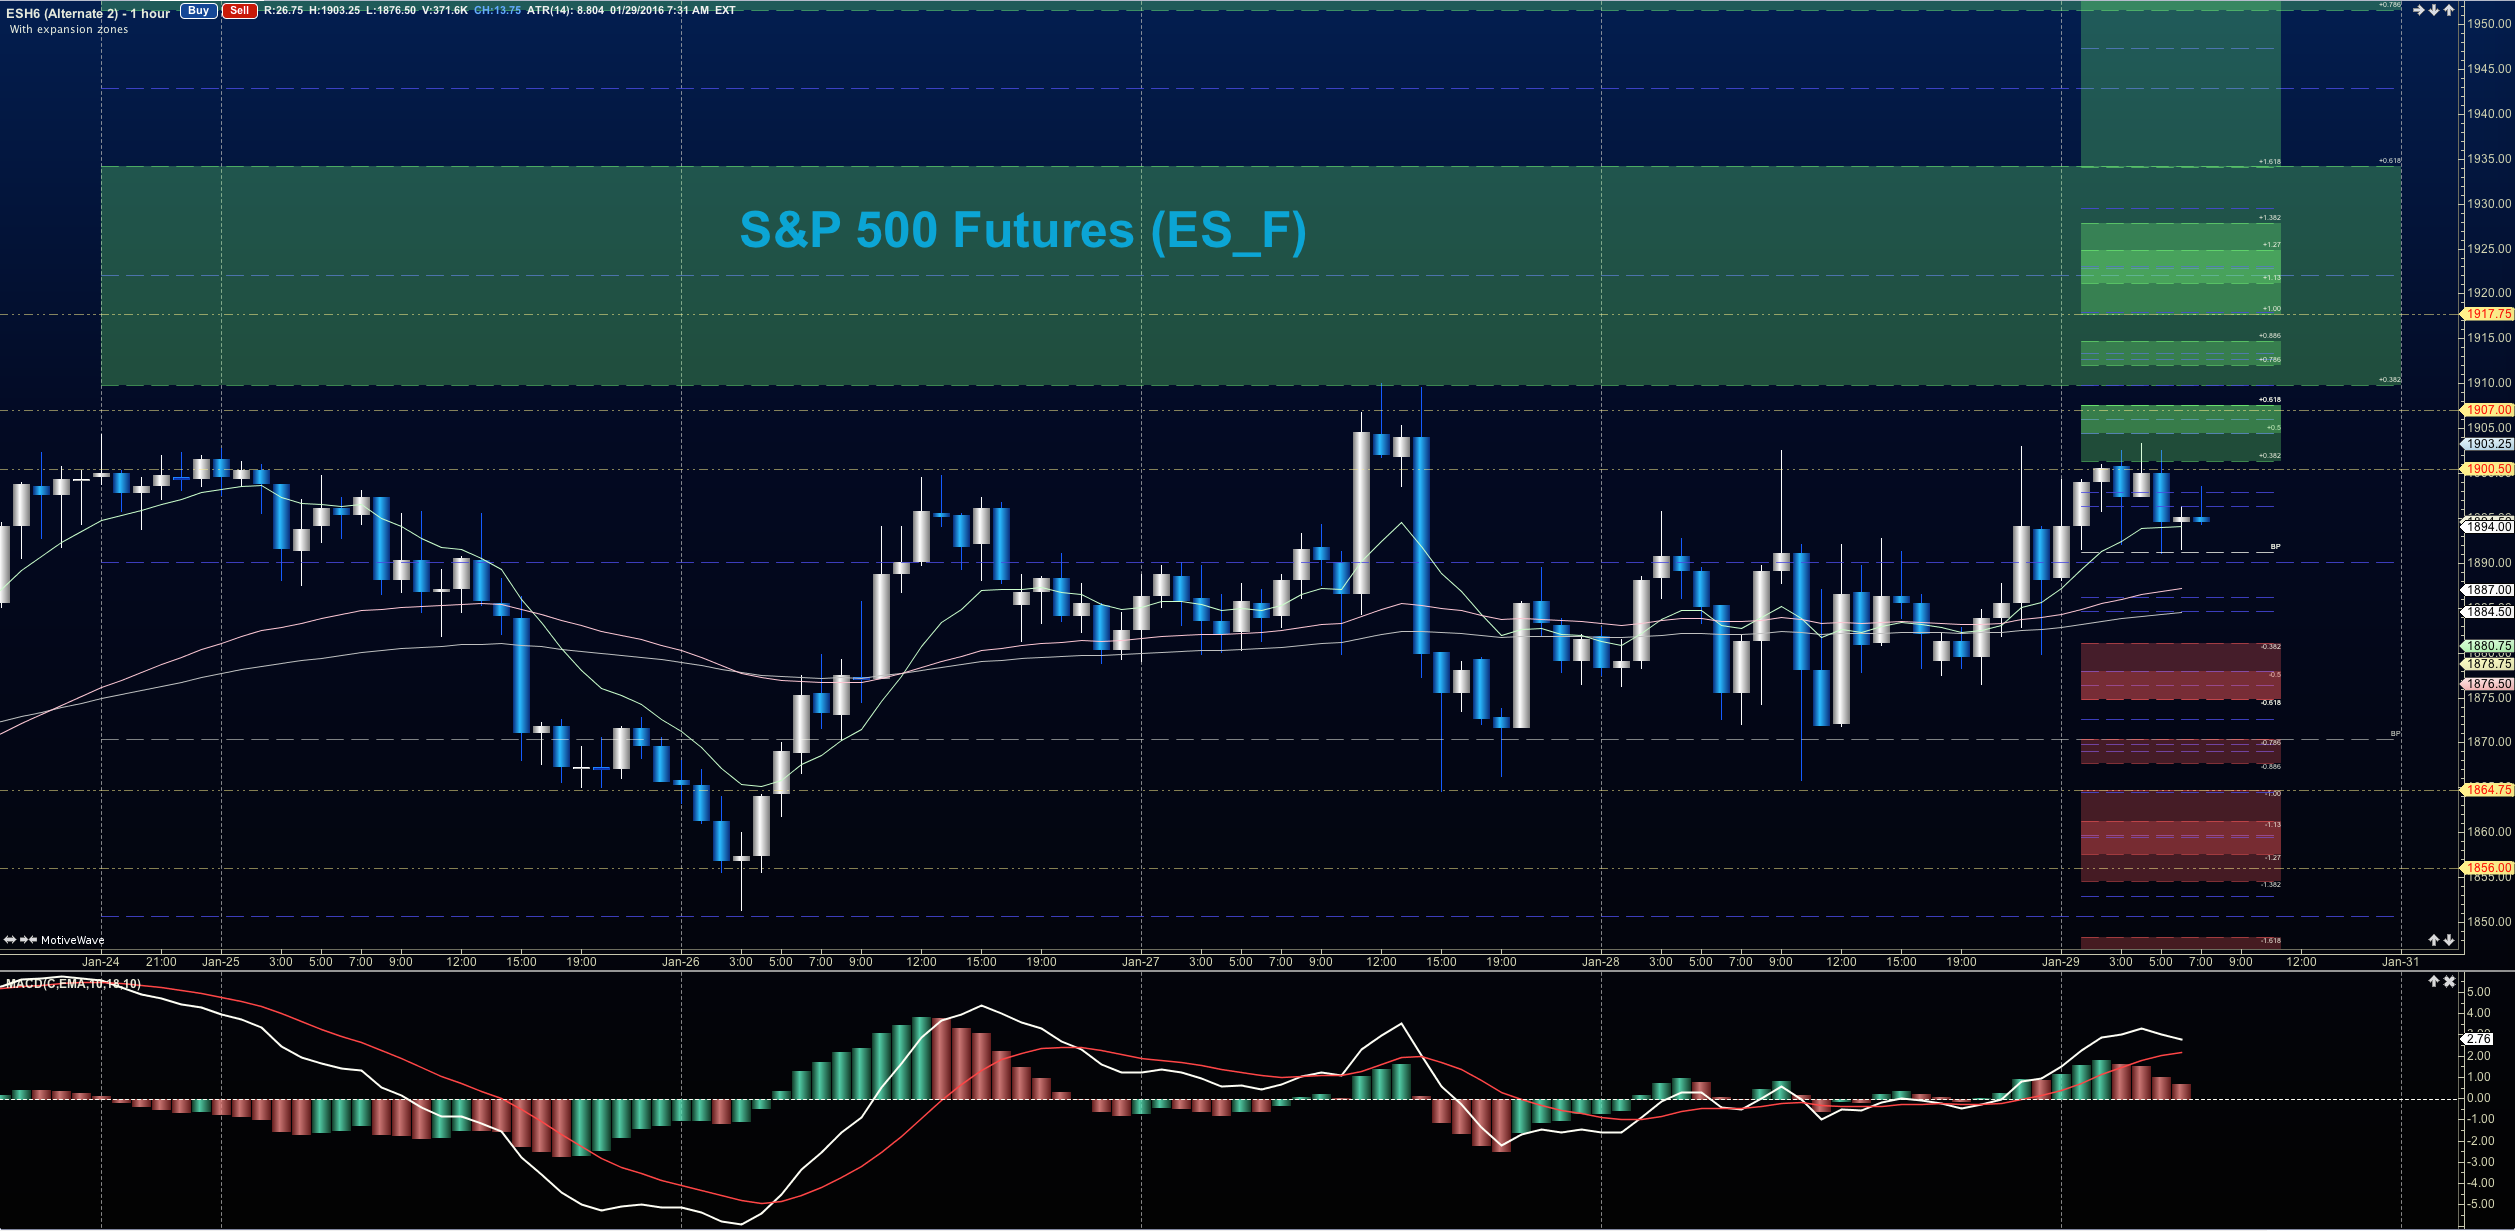 Stock Market Futures Rally: Can Buyers Push Prices Higher?